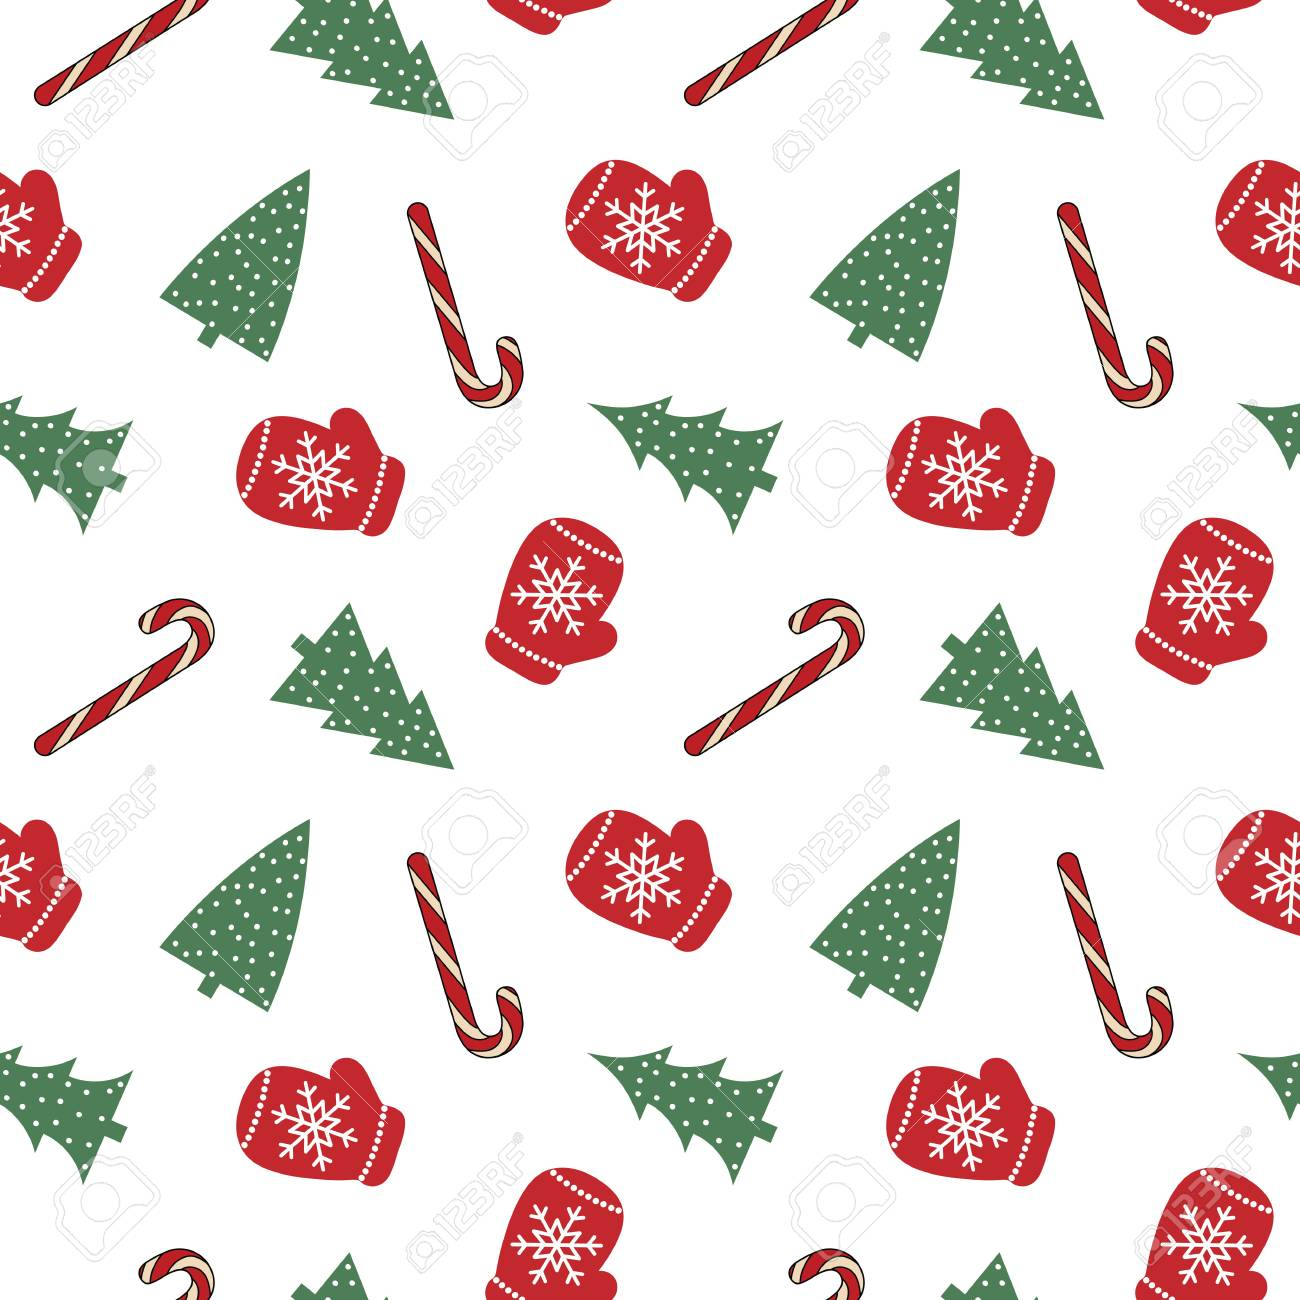 92554662 cute red mittens with snowflakes glove green christmas tree candy cane on a white background pattern